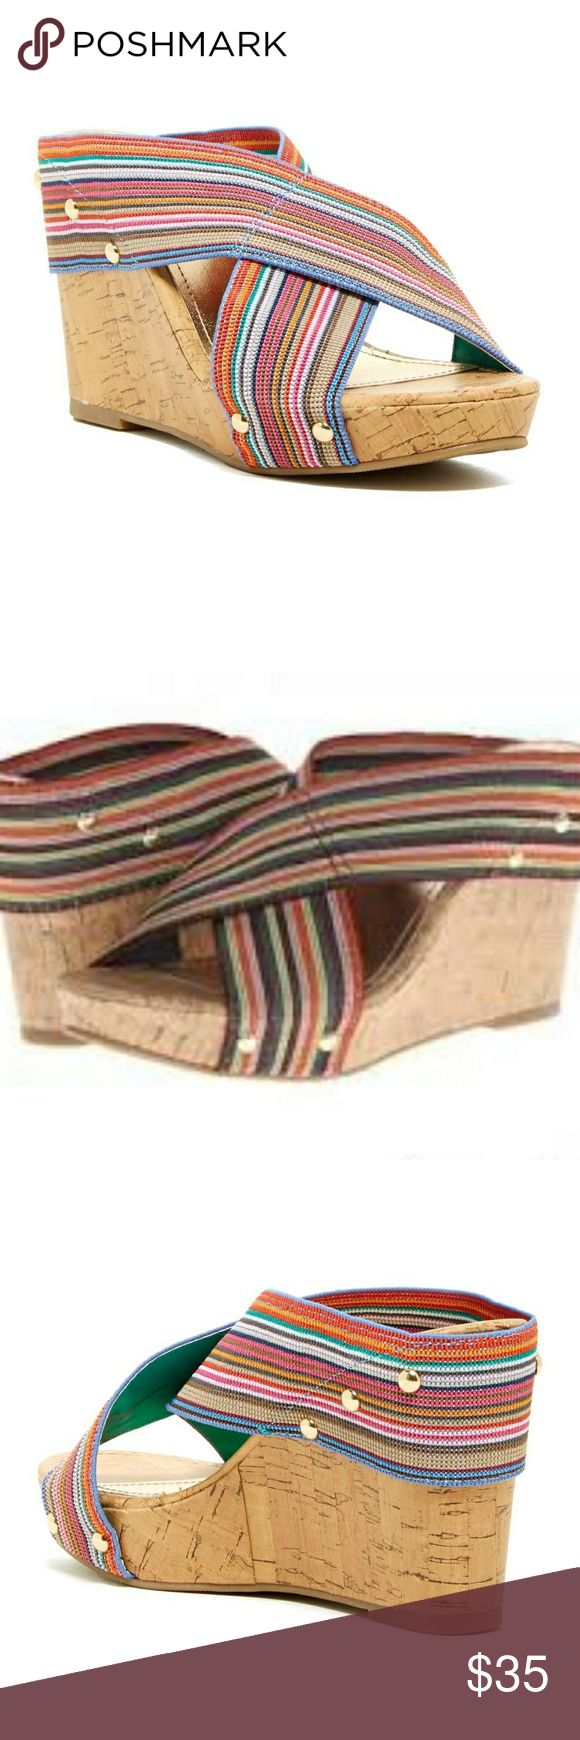 "🆕️ Madden Girl Nautic Wedges Great condition multi colored stripe Nautic wedges. Stylish wedge sandal will complete your spring/summer outfit and with the multi colors will go with almost anything in your wardrobe. Approx.* 4"" wedge heel. Gold studs rivets. Worn maybe twice. Madden Girl Shoes Wedges"